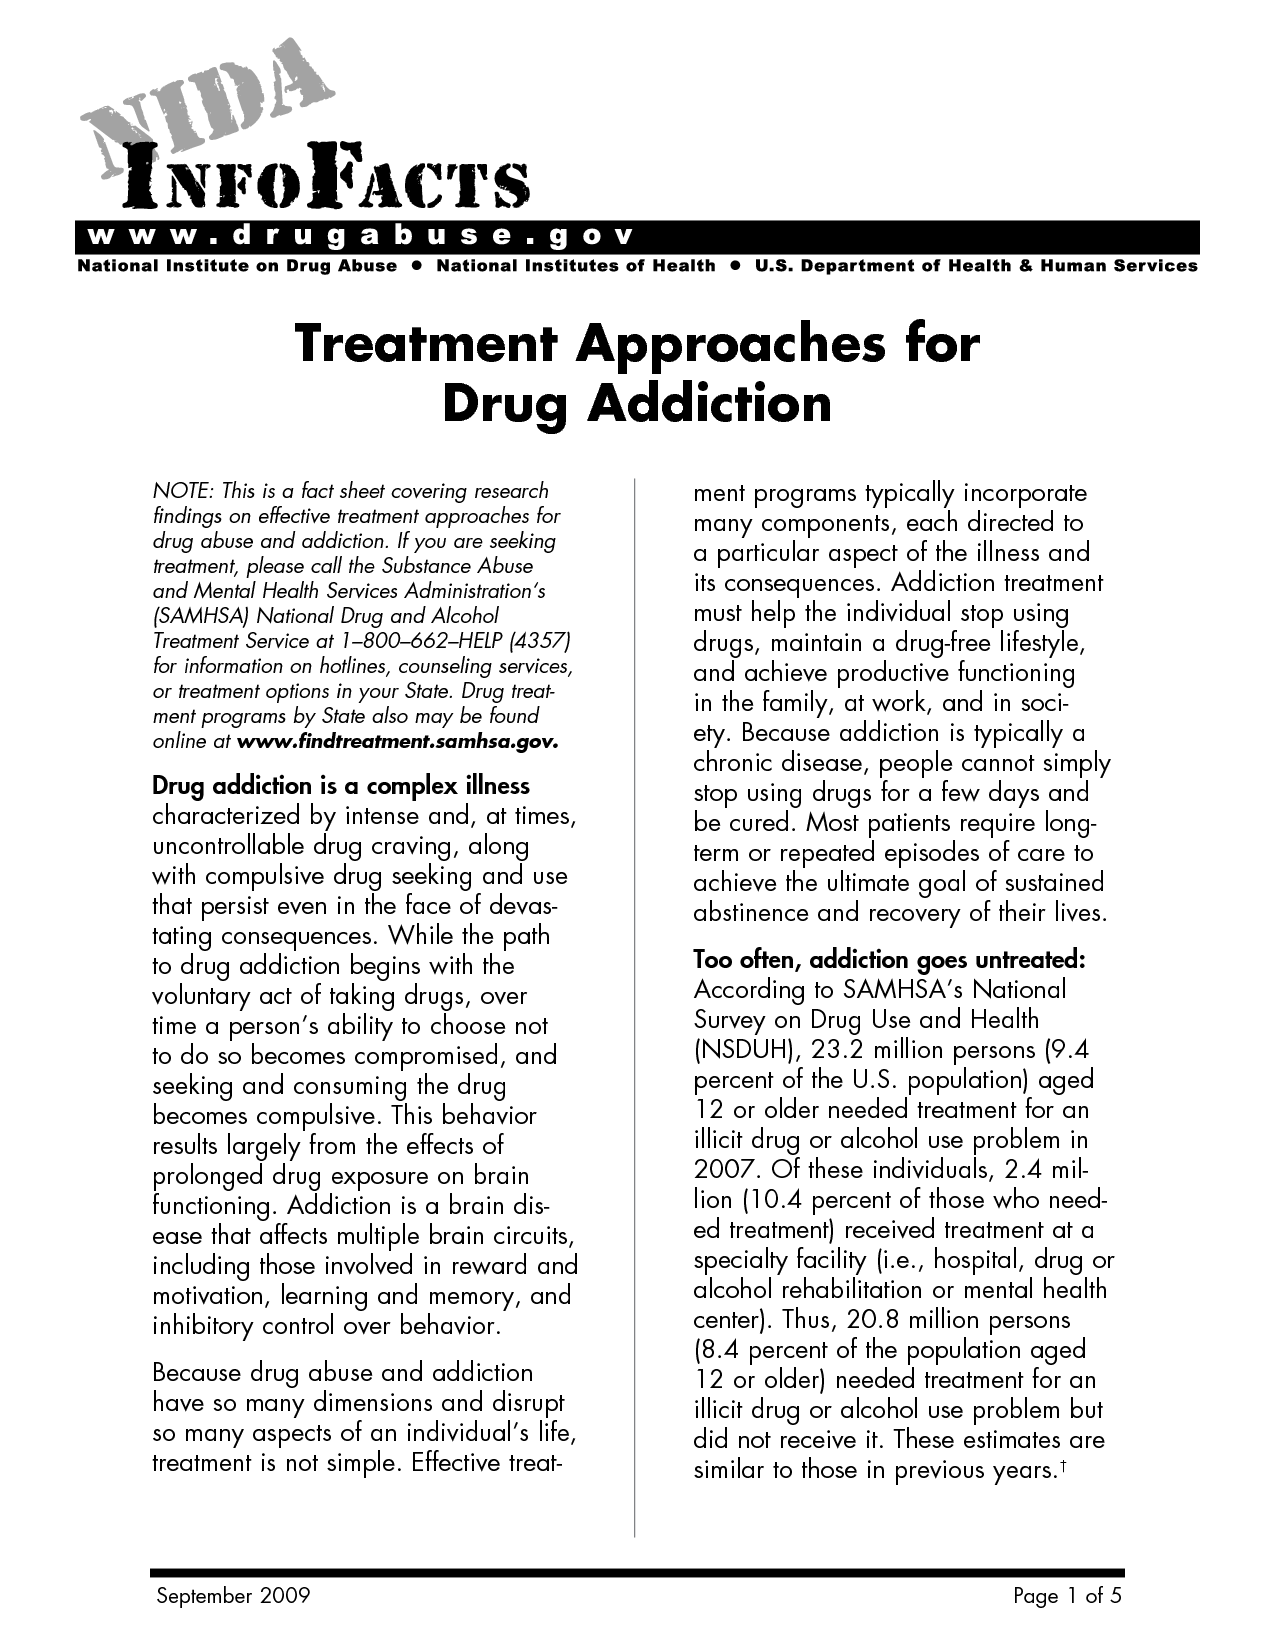 worksheet Drug Addiction Worksheets free relapse prevention worksheets treatment approaches for drug addiction approaches